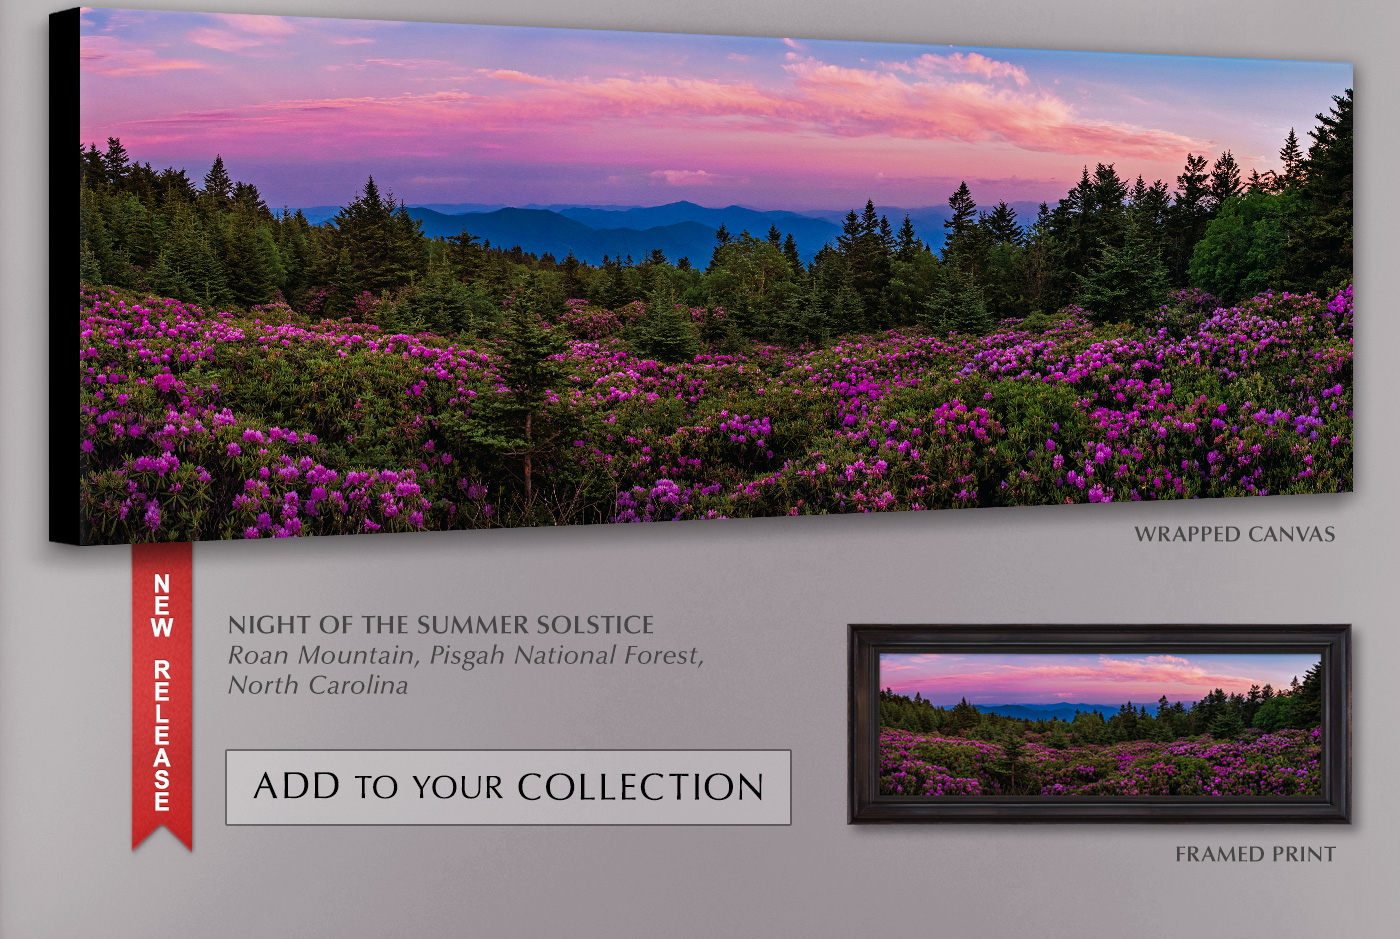 A new release titled Night of the Summer Solstice, shown as a wrapped canvas and framed print